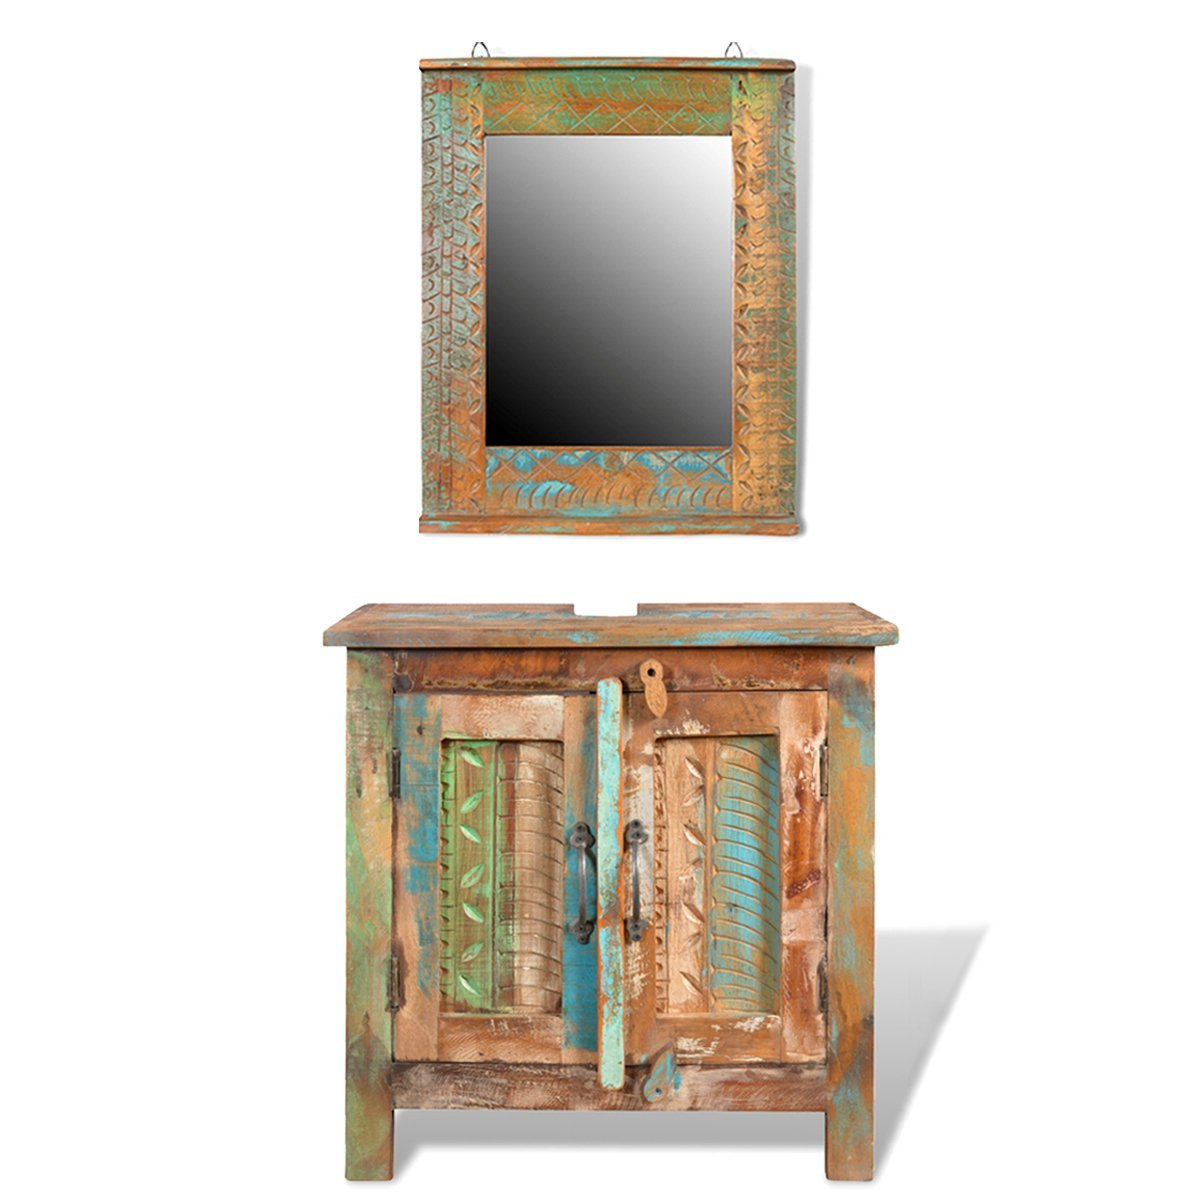 Reclaimed Solid Wood Bathroom Vanity Cabinet Set With Mirror: Amazon.co.uk:  Kitchen & Home